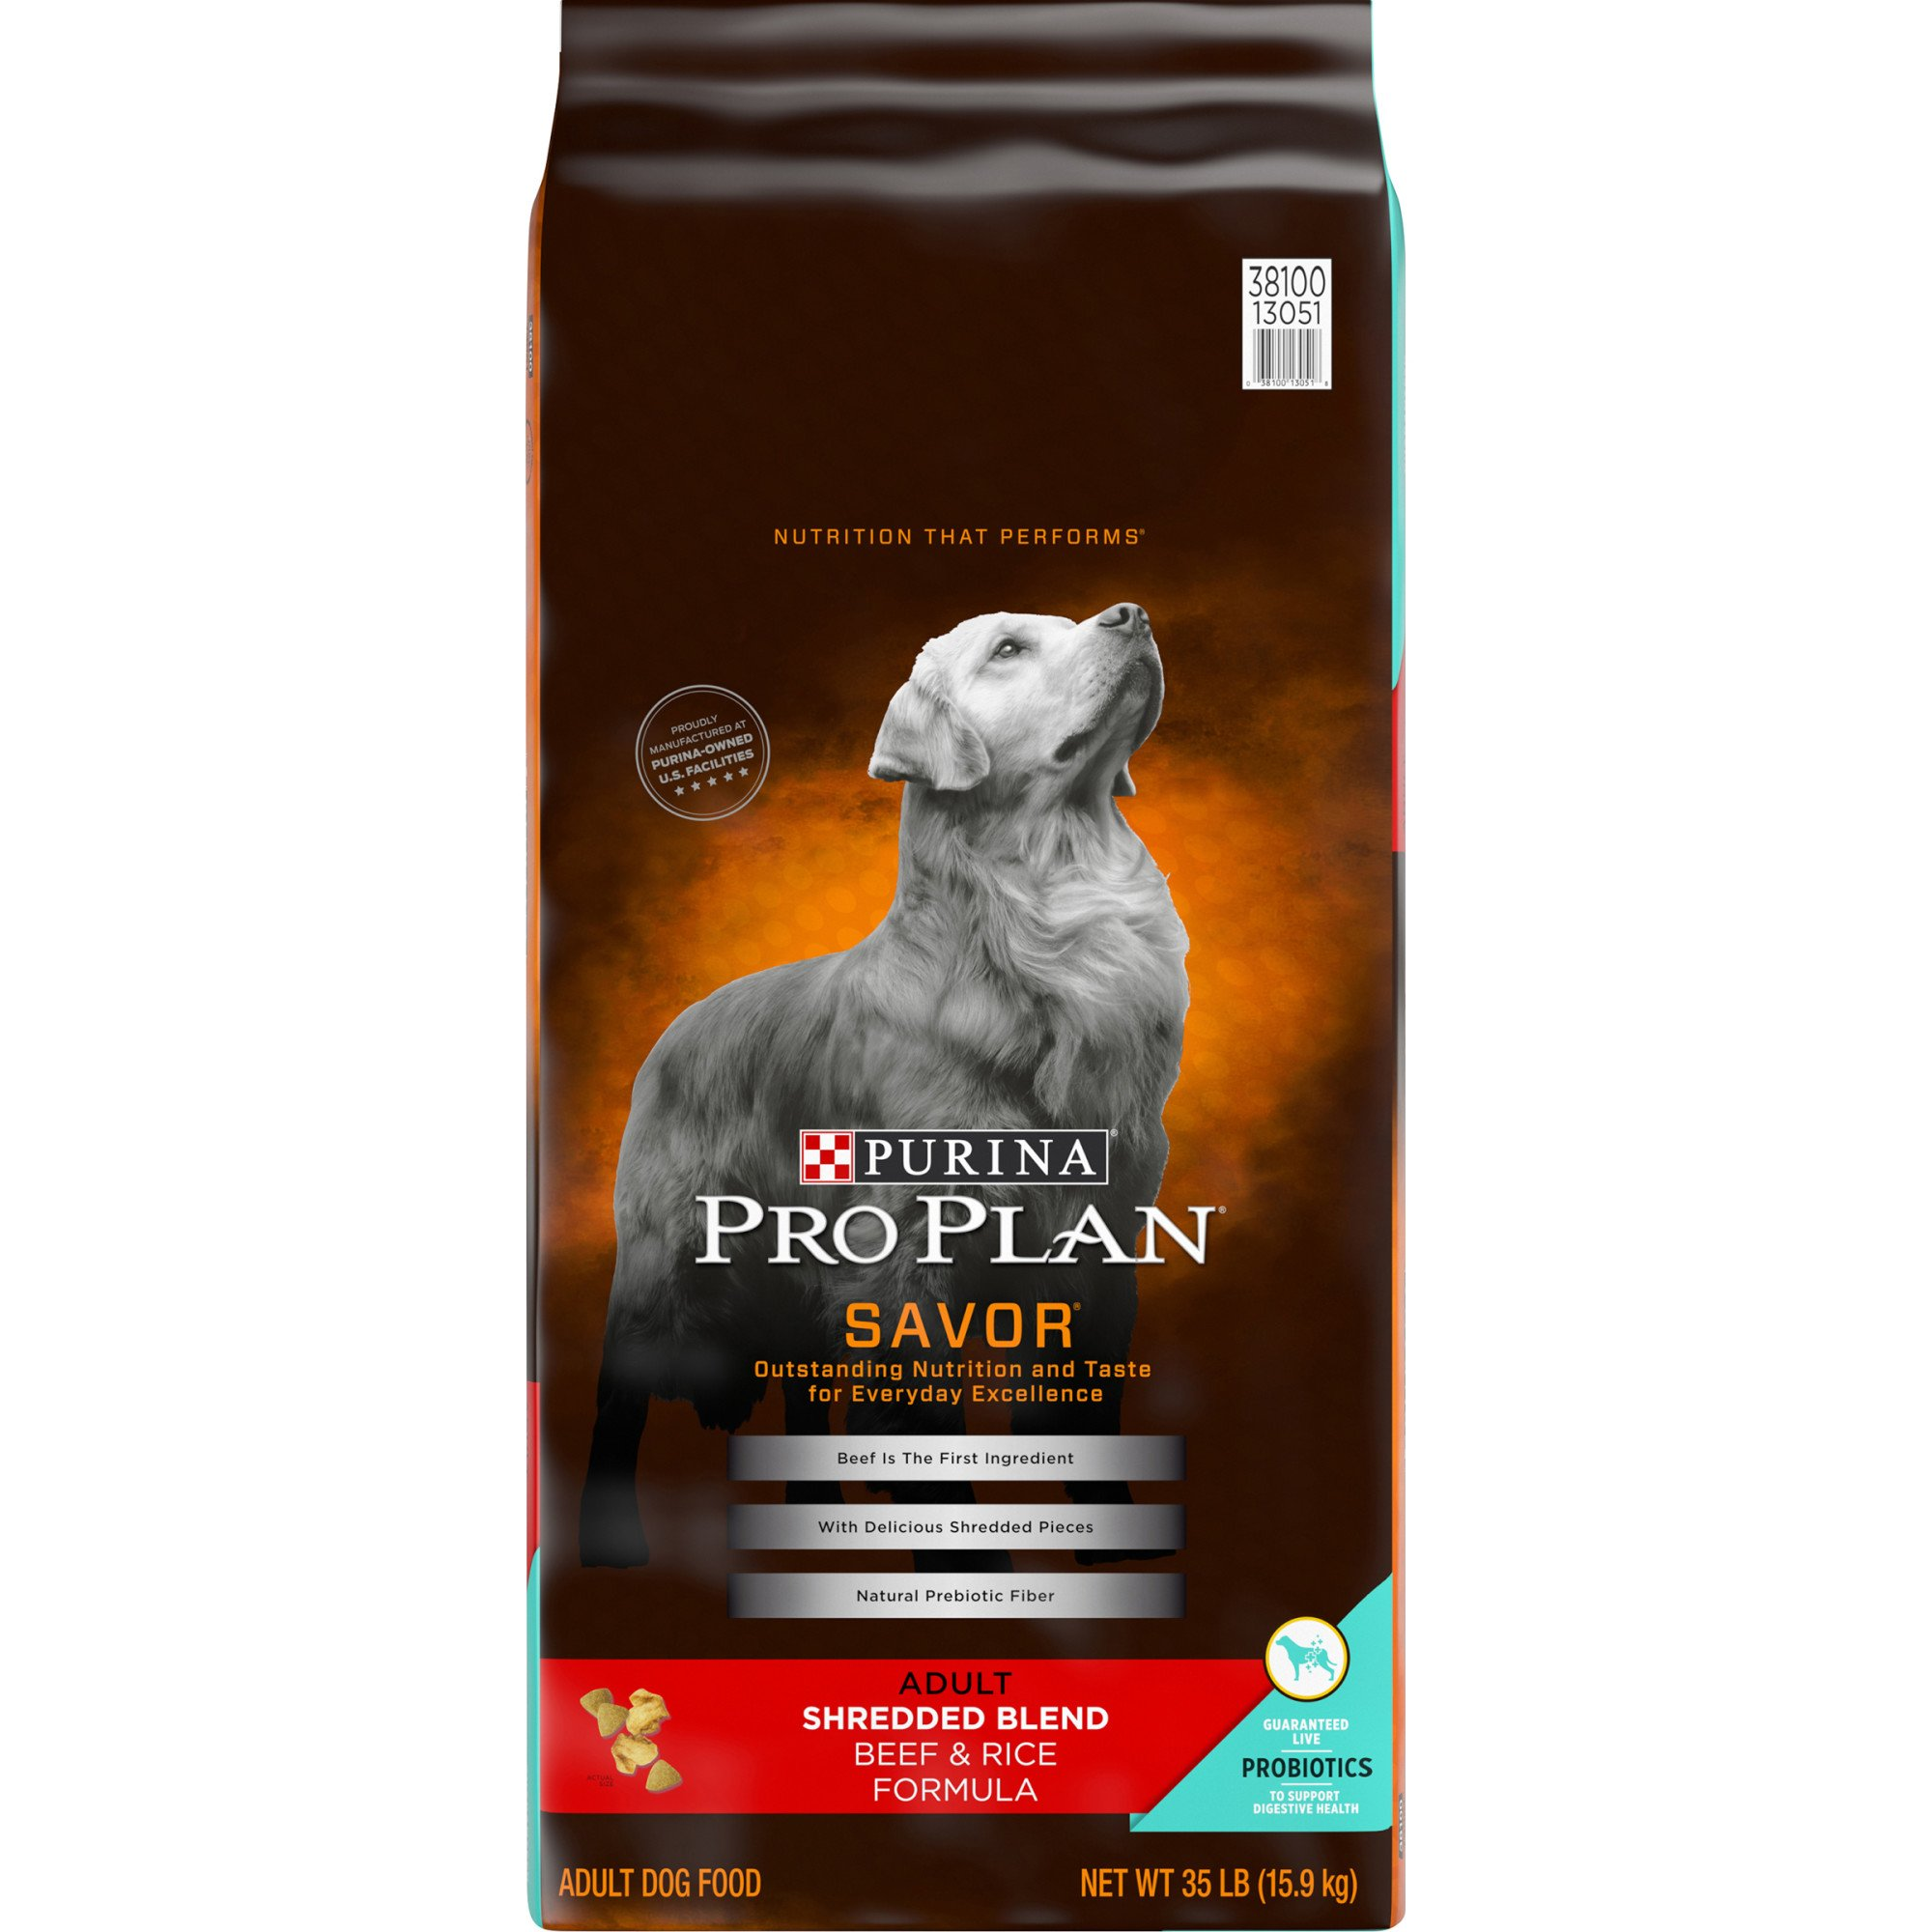 Purina Pro Plan Savor Shredded Blend Beef Rice Adult Dog Food Petco